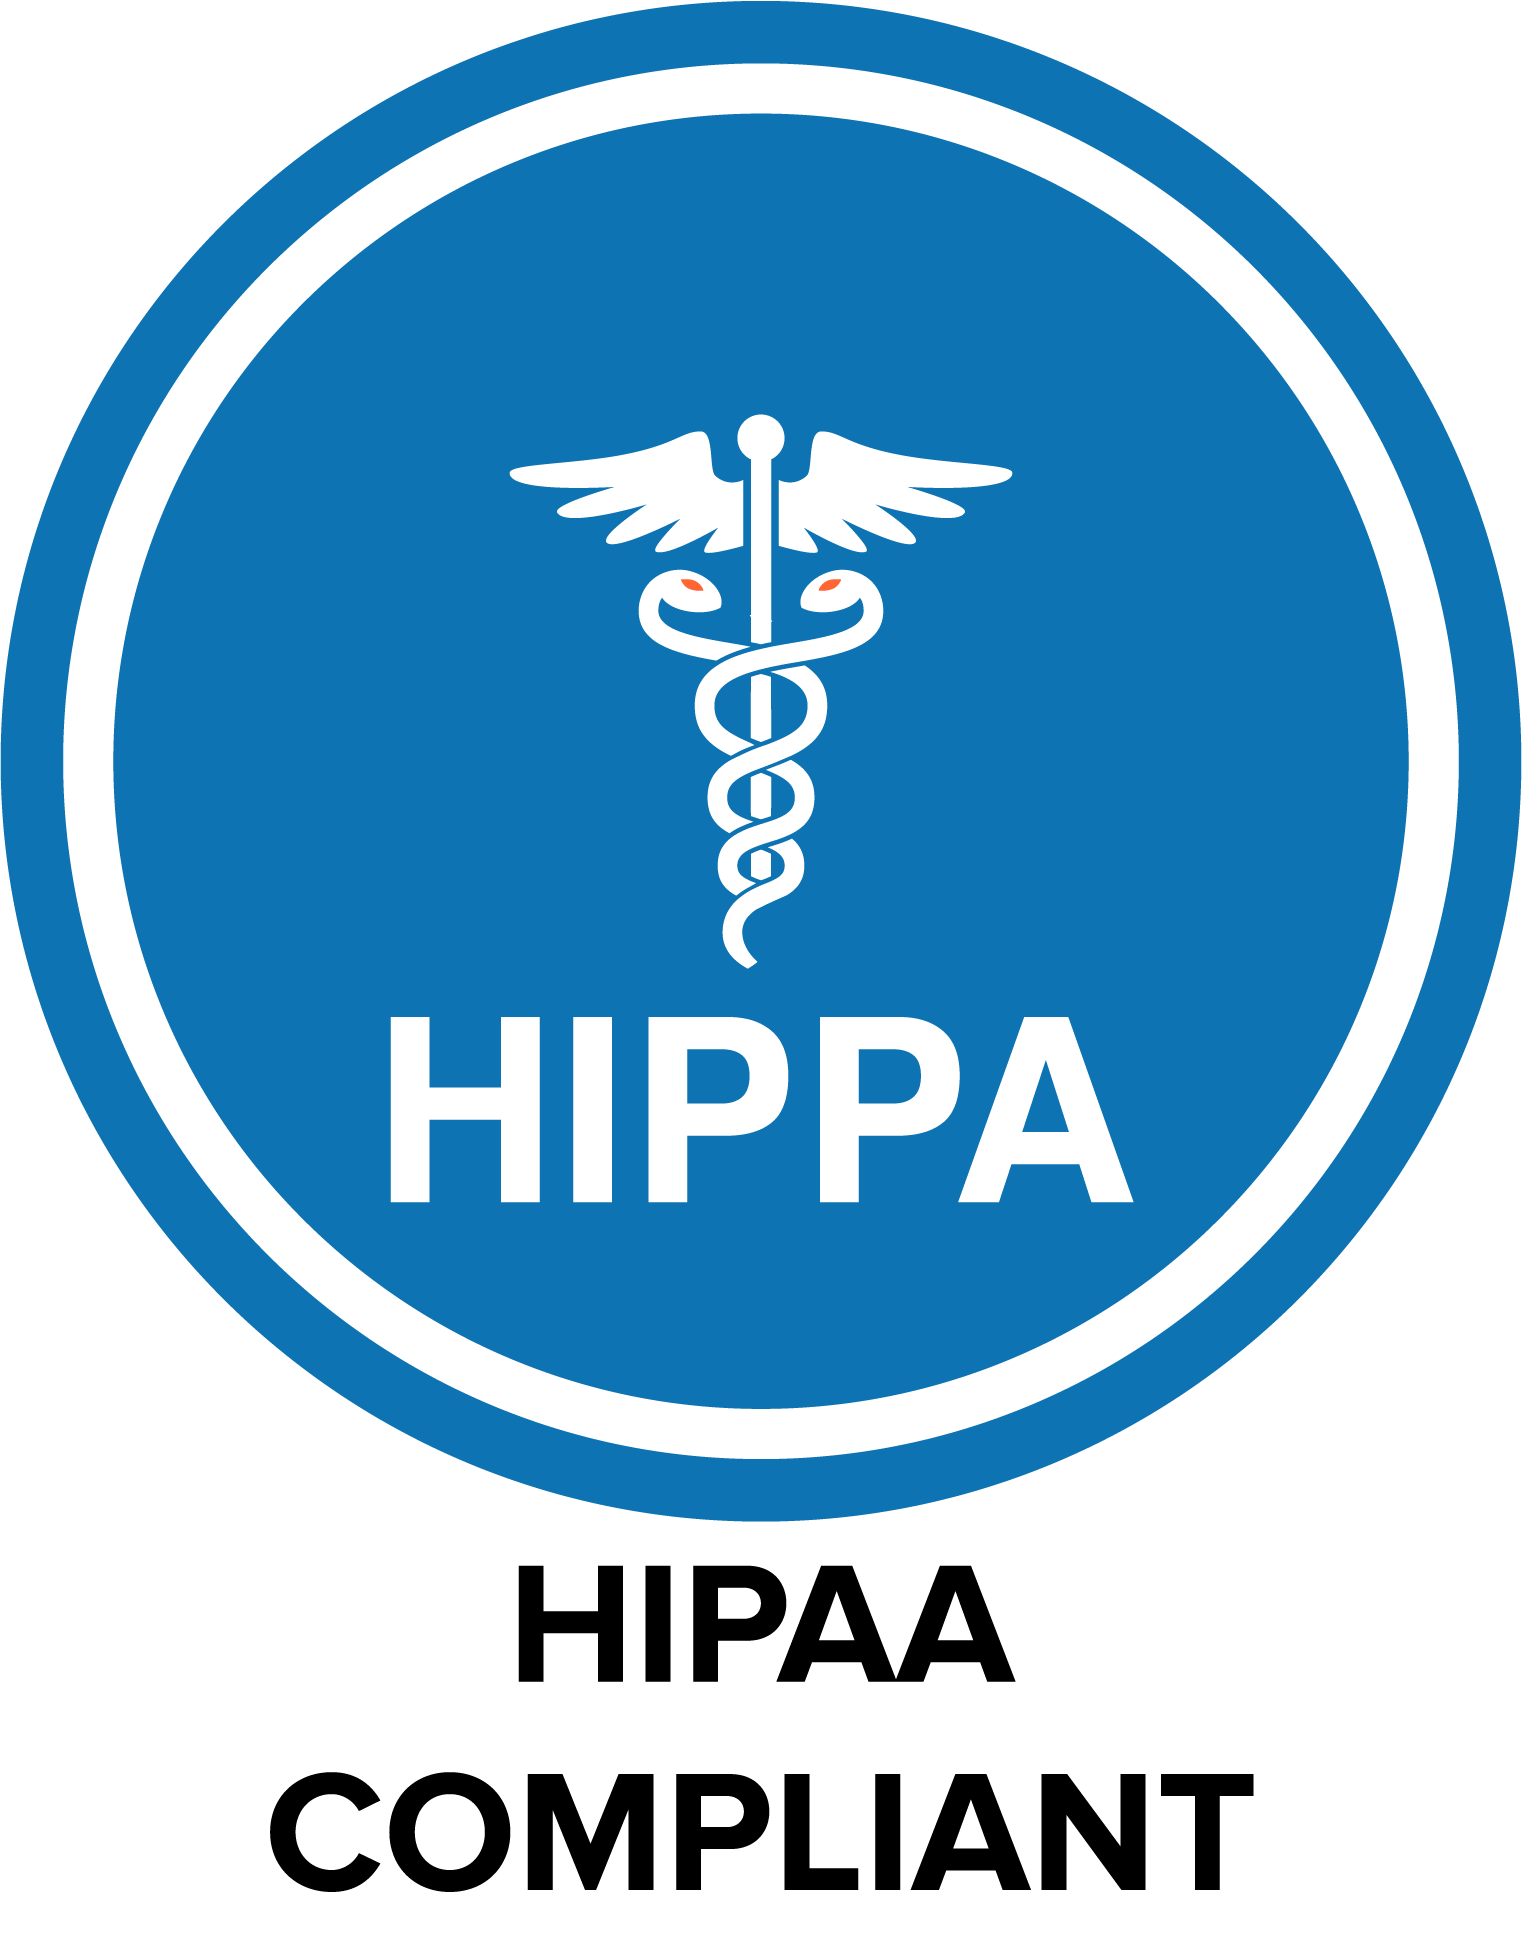 ScriptsIT follows the latest HIPAA Compliance guidelines. All patient information is encrypted in our database.